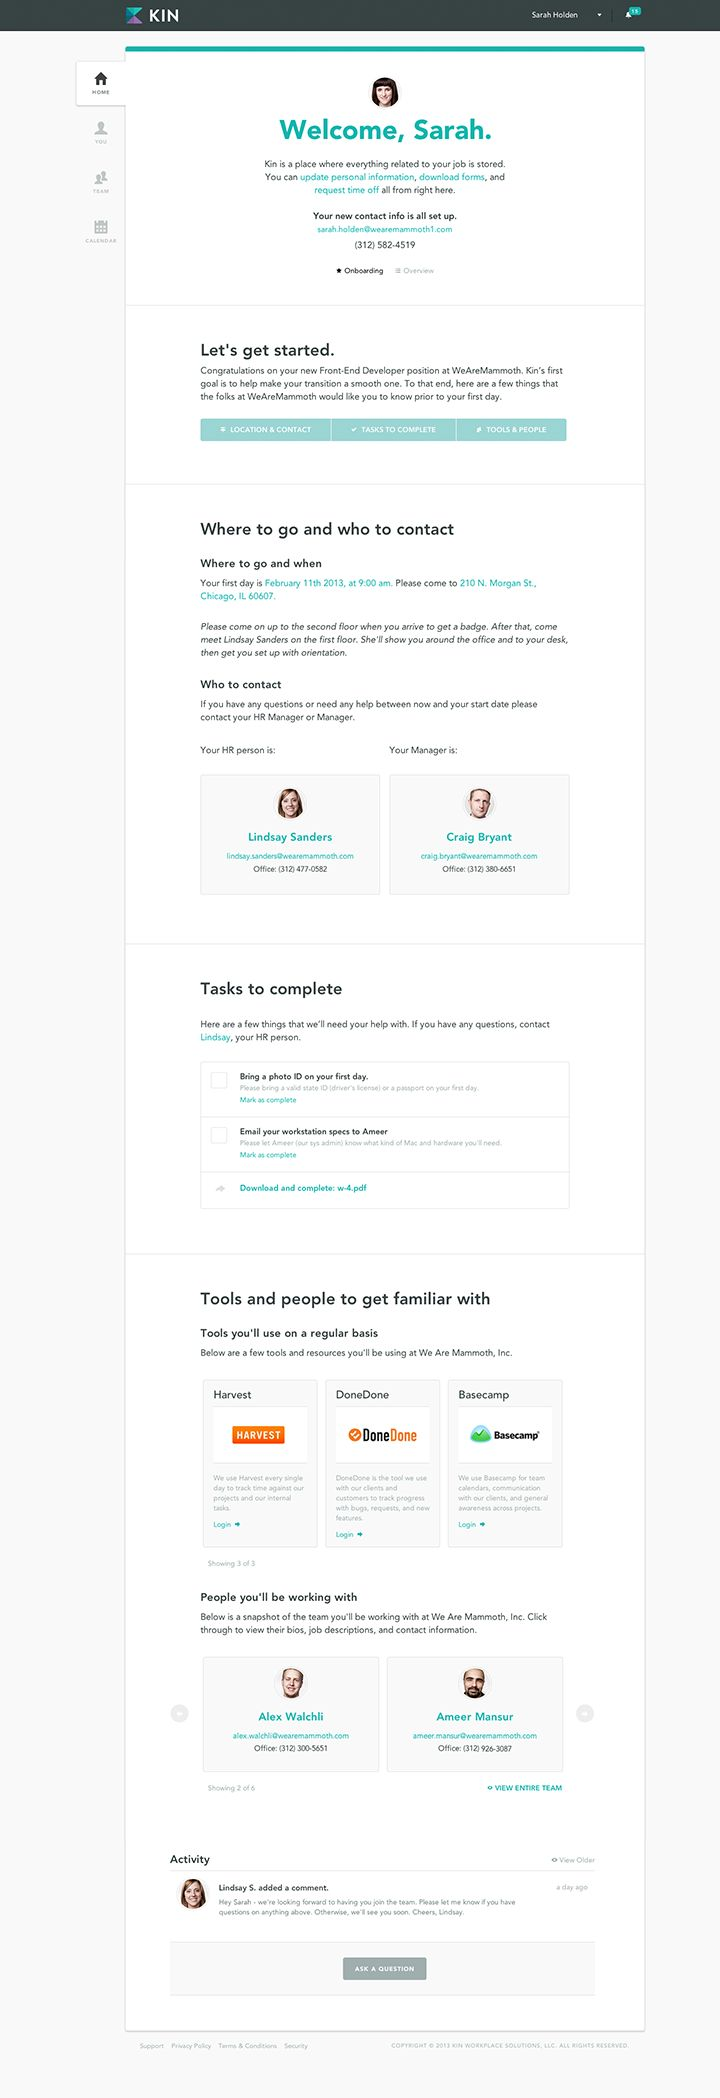 Onboarding – a very nice example of how the intranet can link our existing syste…